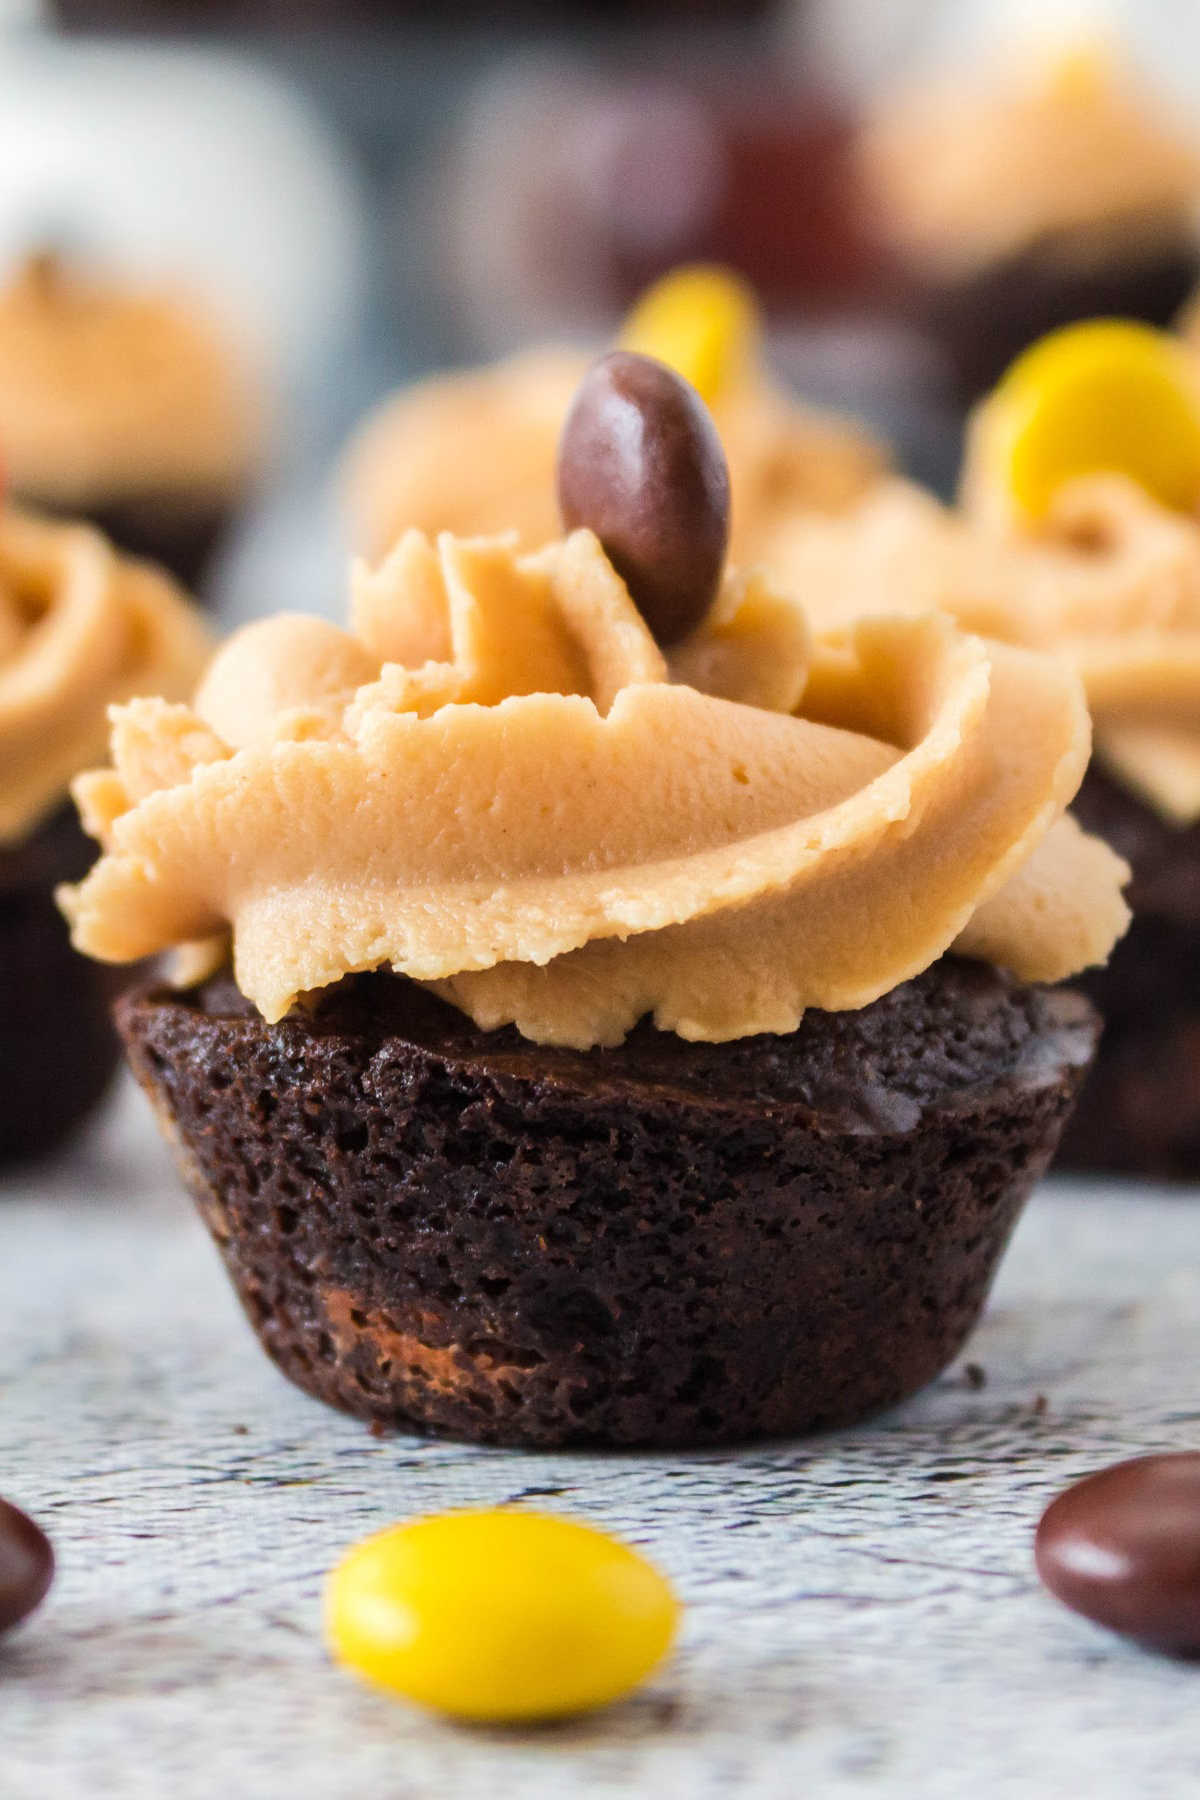 A close up picture of finished brownie bites with peanut butter frosting on them.